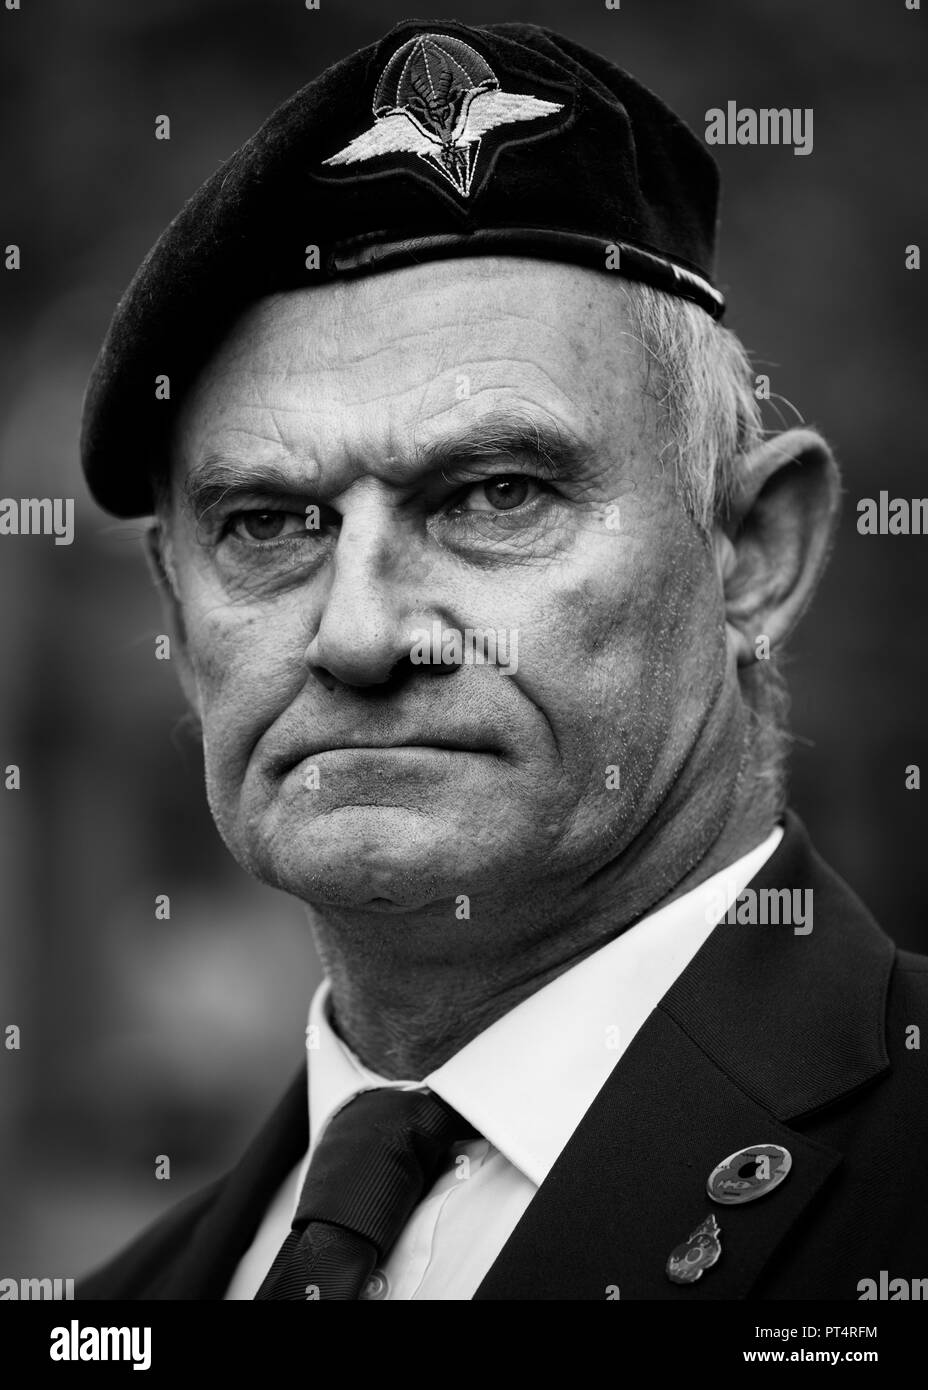 South African war veteran wearing his beret at the Remembrance Day Parade, London - Stock Image